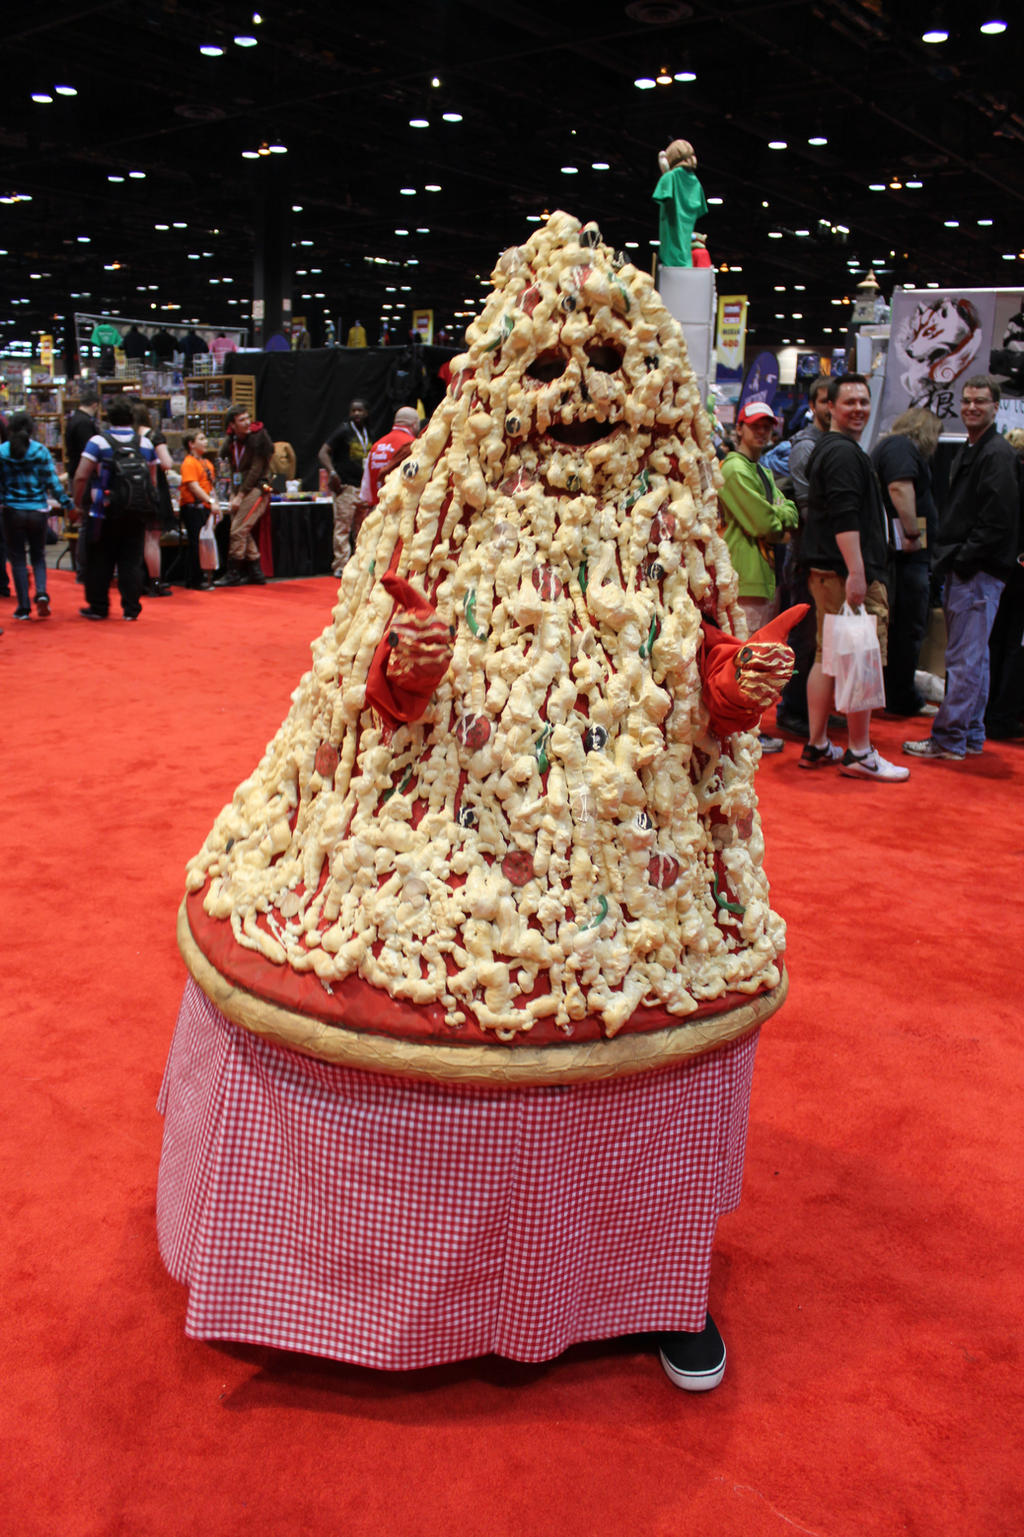 Pizza The Hutt By Vega Vega On Deviantart